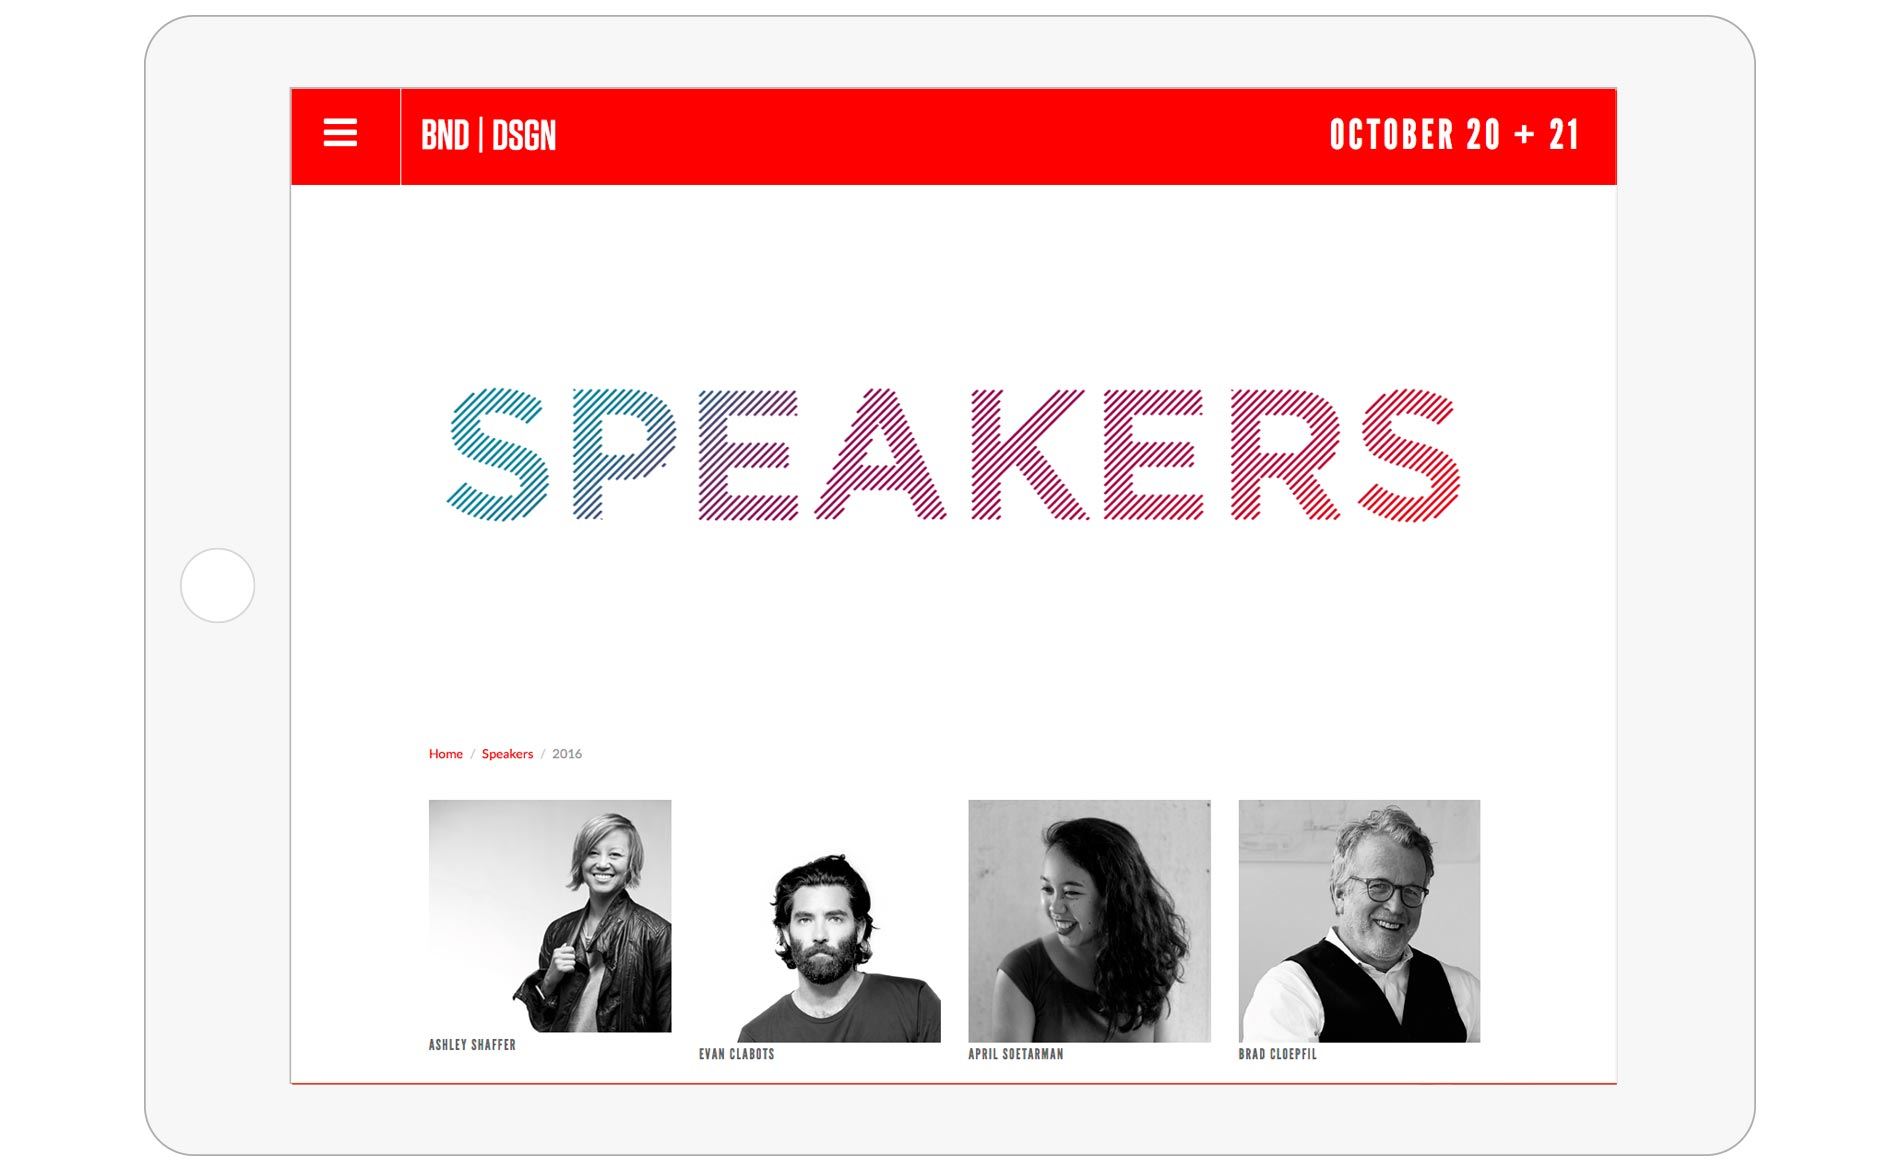 Bend Design Conference - Speakers Page